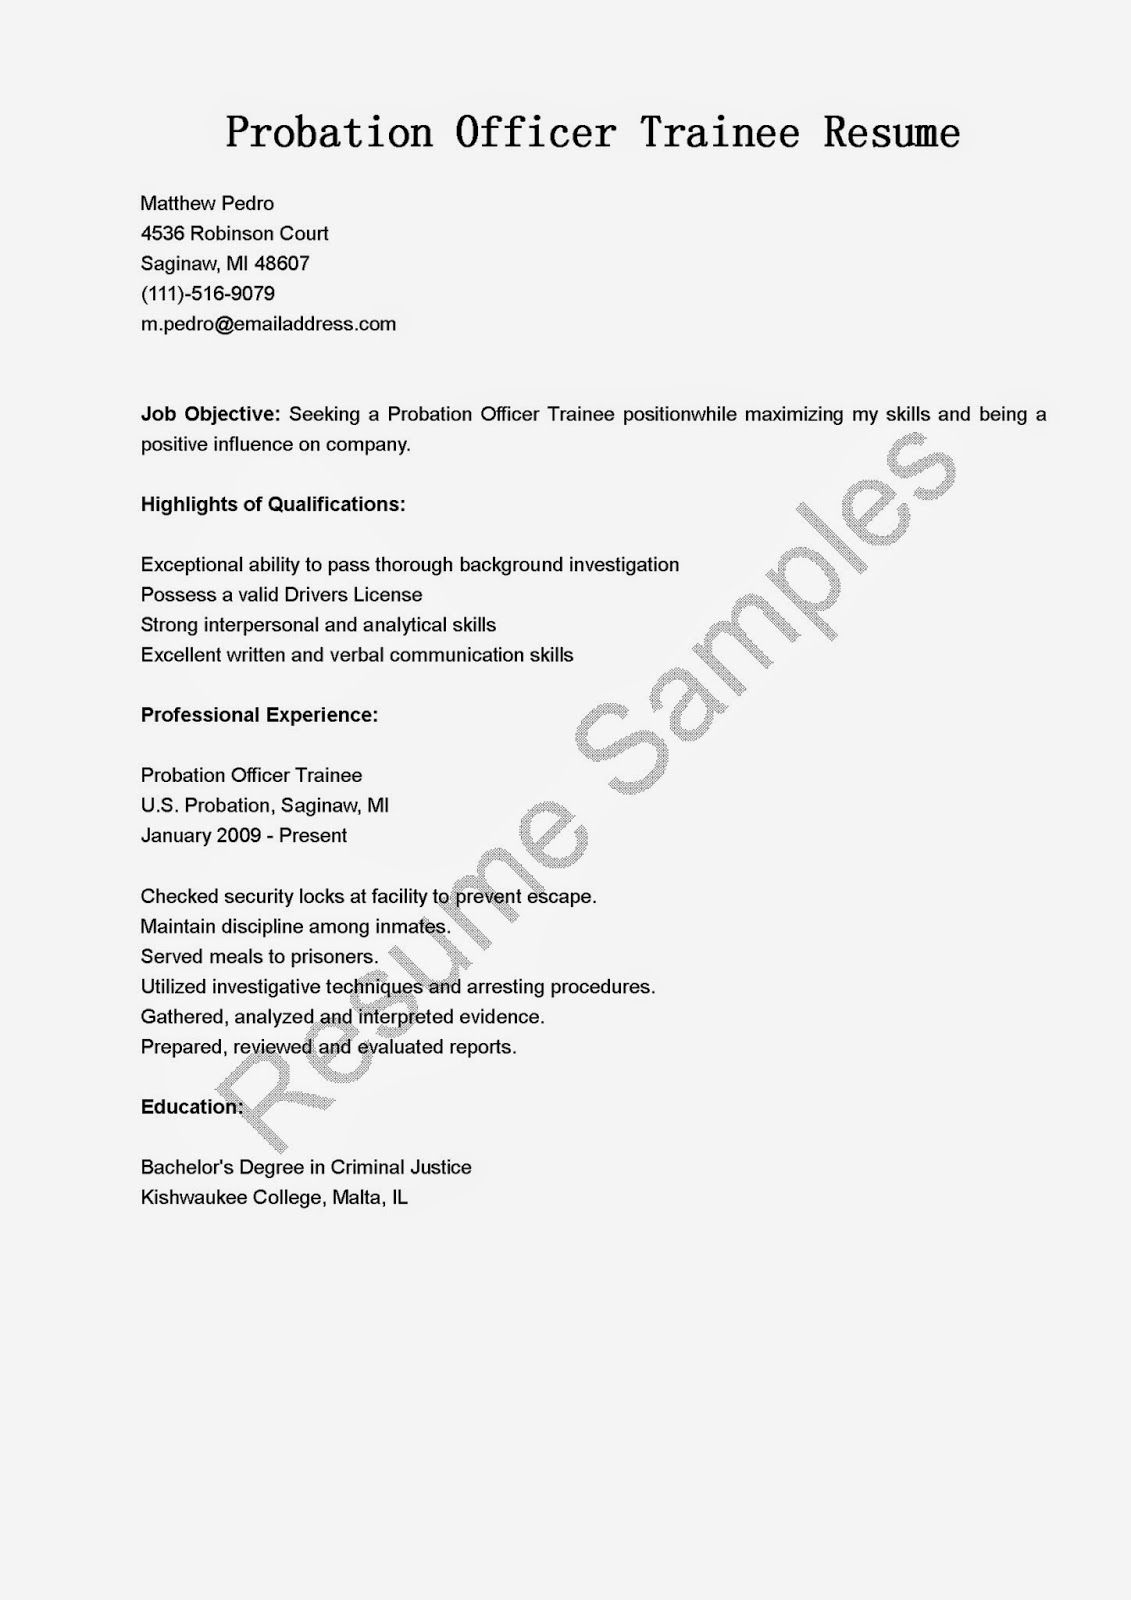 Skills Example For Resume Probation Officer Trainee Resume Sample Resume Samples .